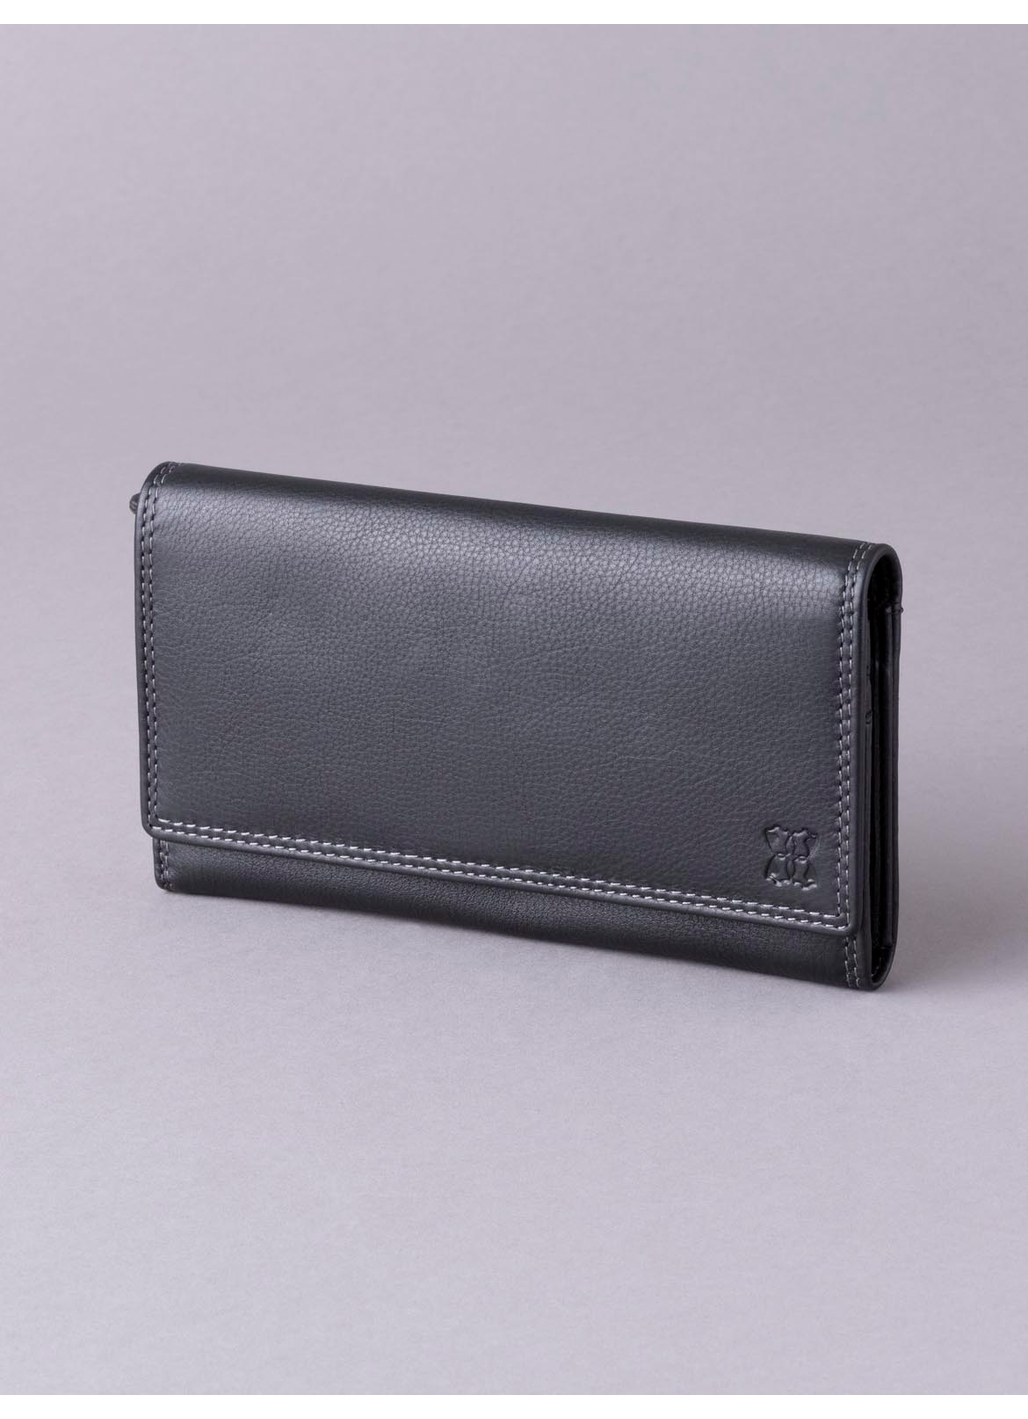 19cm Leather Purse in Black